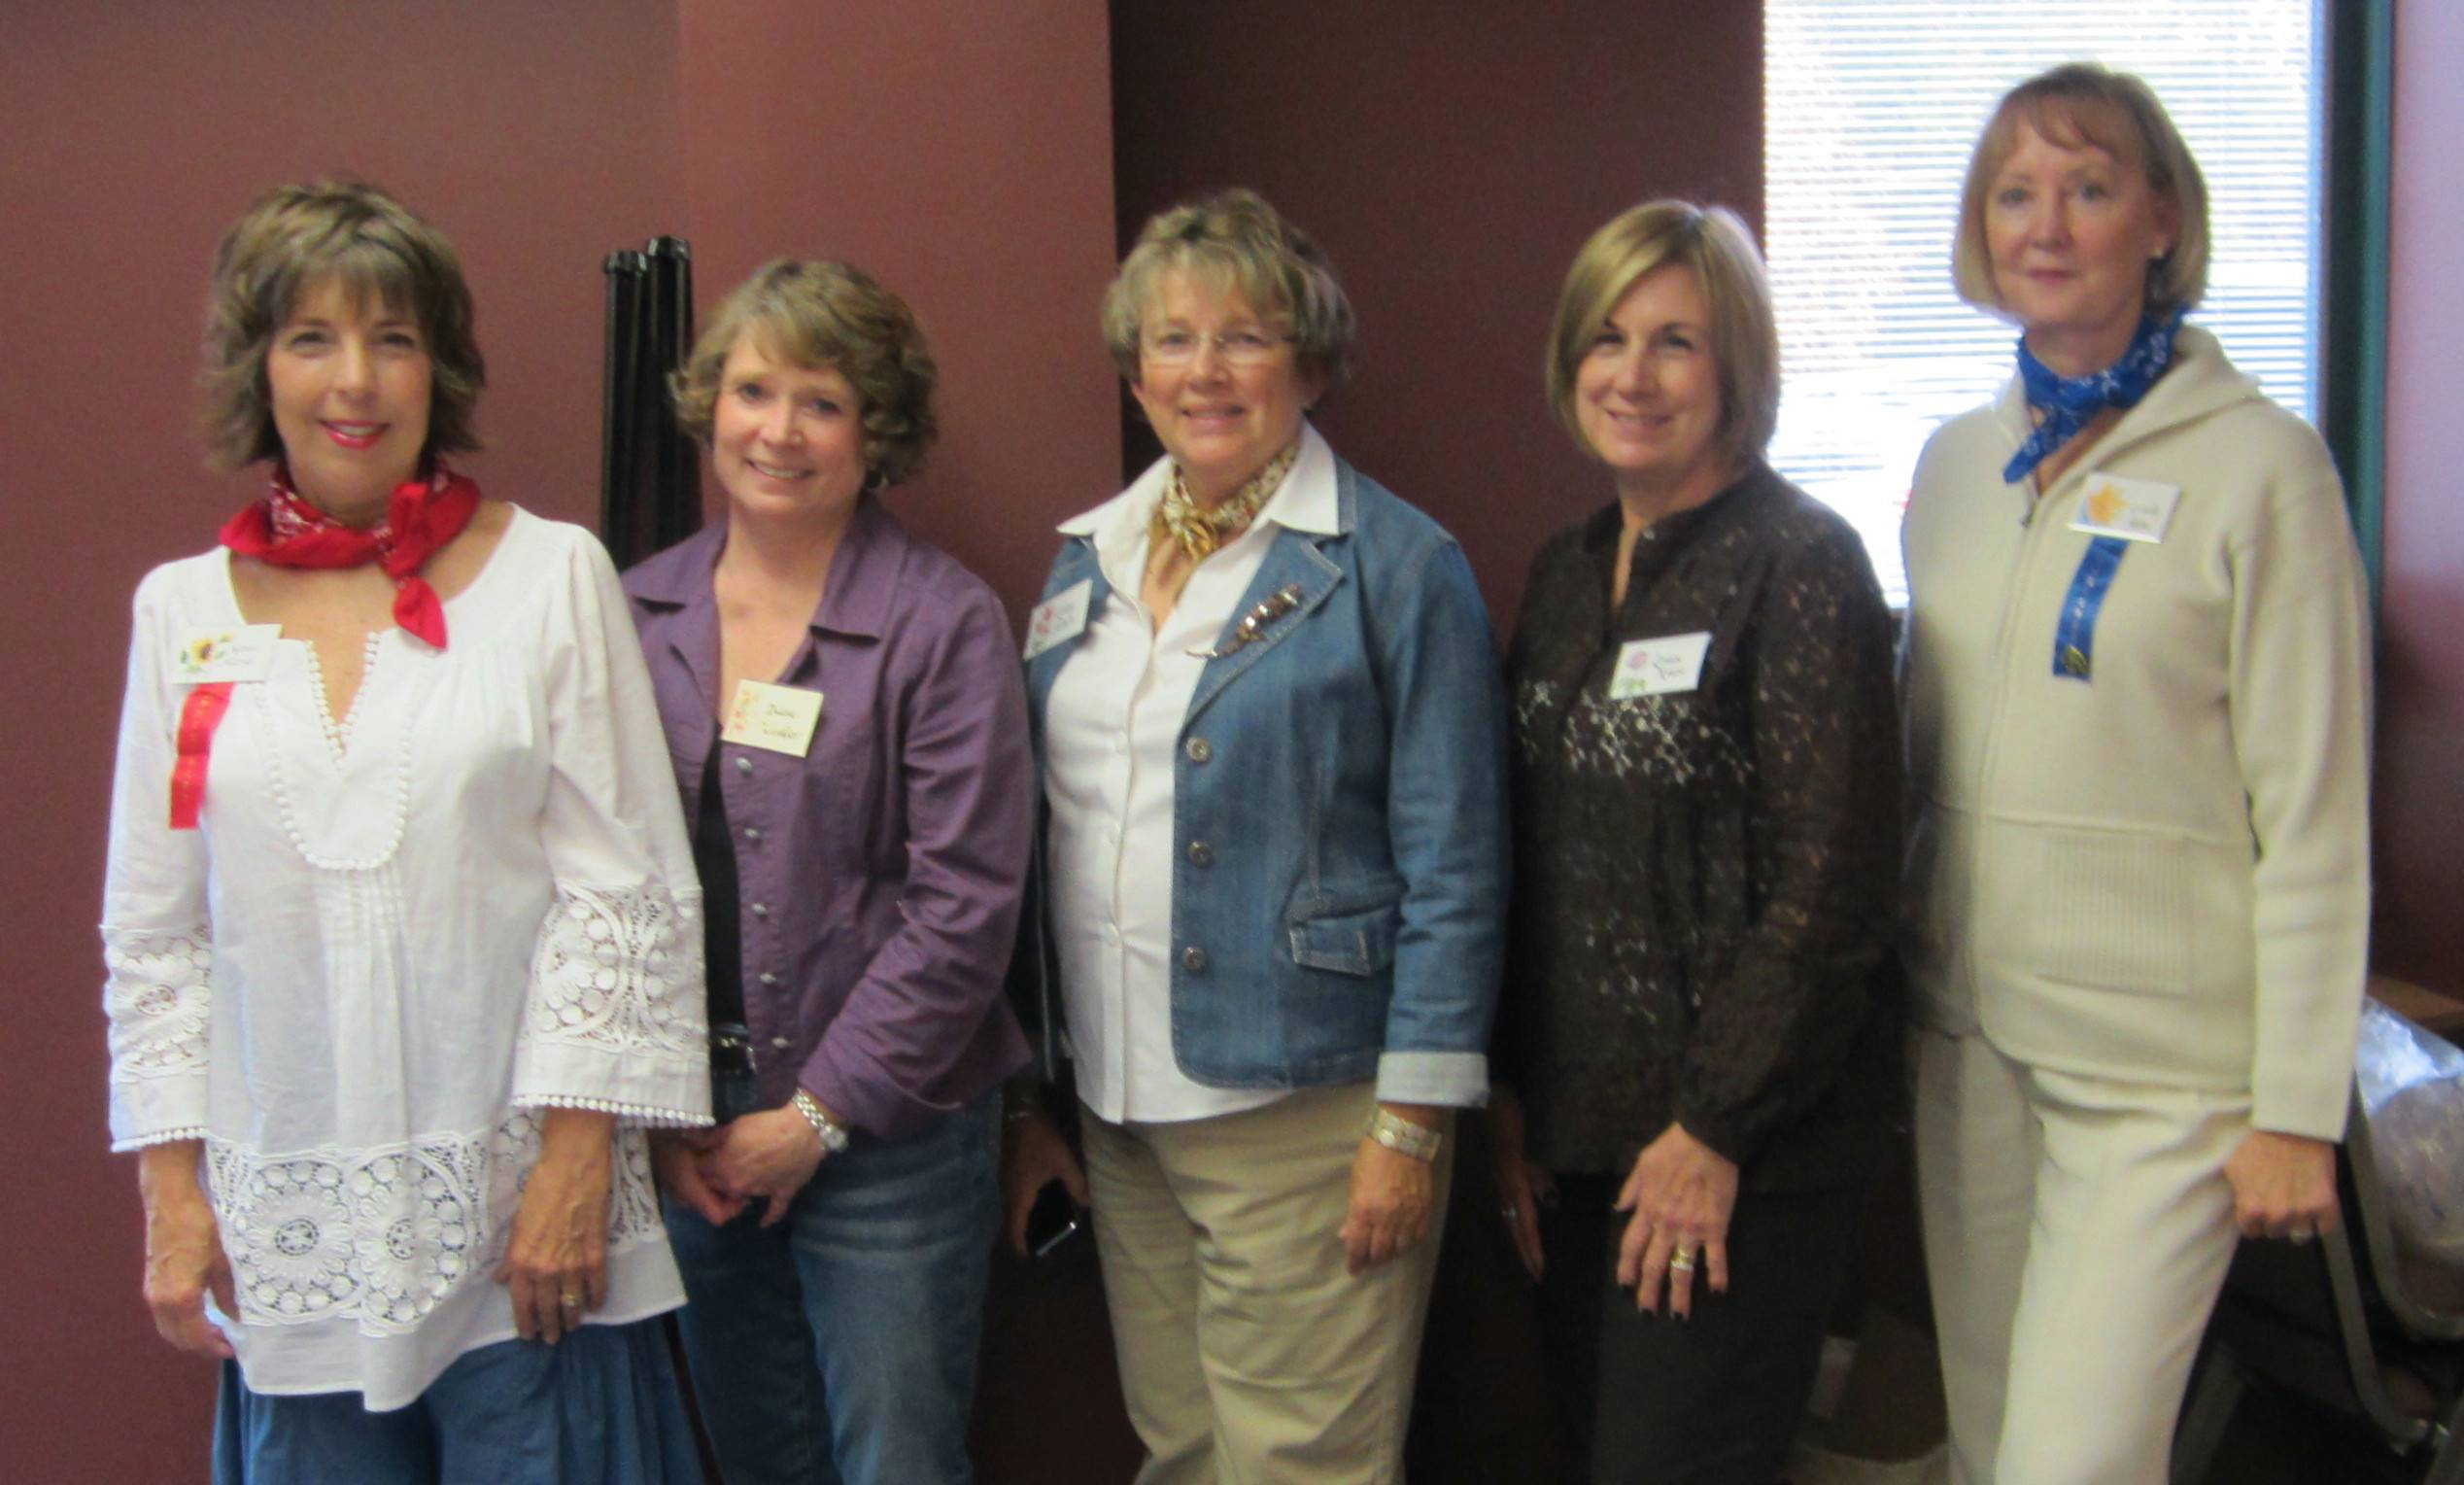 The 2013 Pottawatomie Garden Club executive board from left to right Karen Masus, president; Diane Winkler, secretary; Lanny Salvati, vice president; Louise Cruse, treasurer; Cynthia Jelm, out going president.